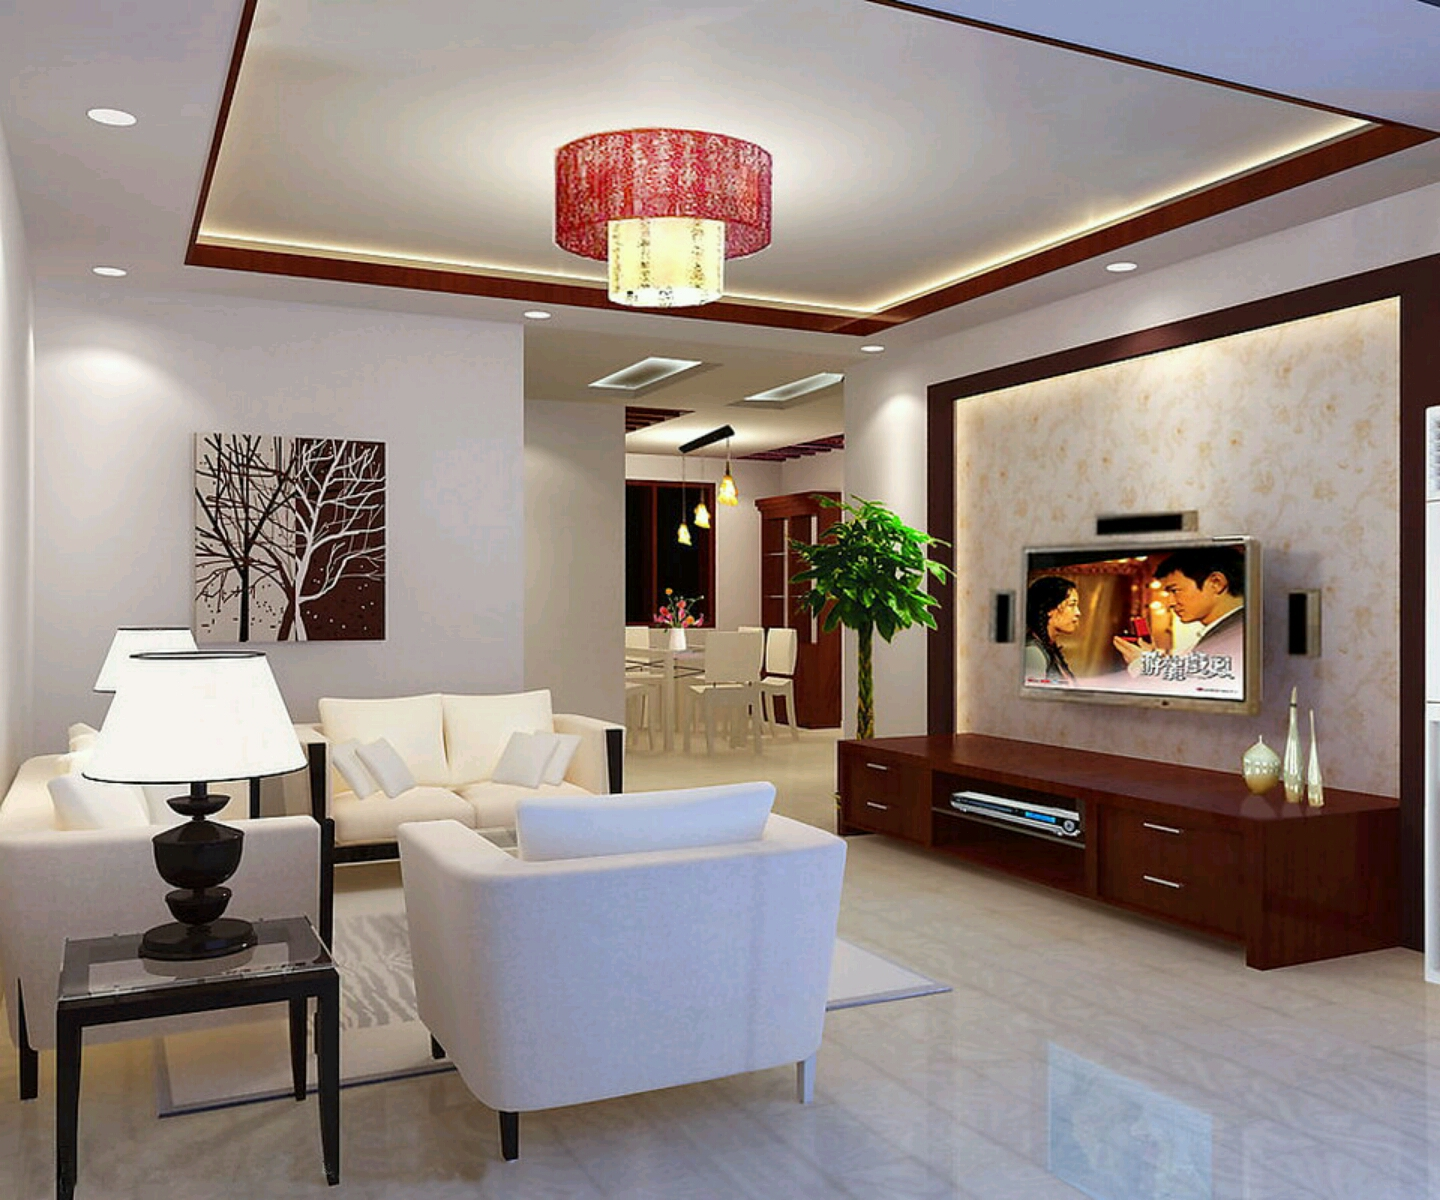 Modern interior decoration living rooms ceiling designs for Decoration house living room